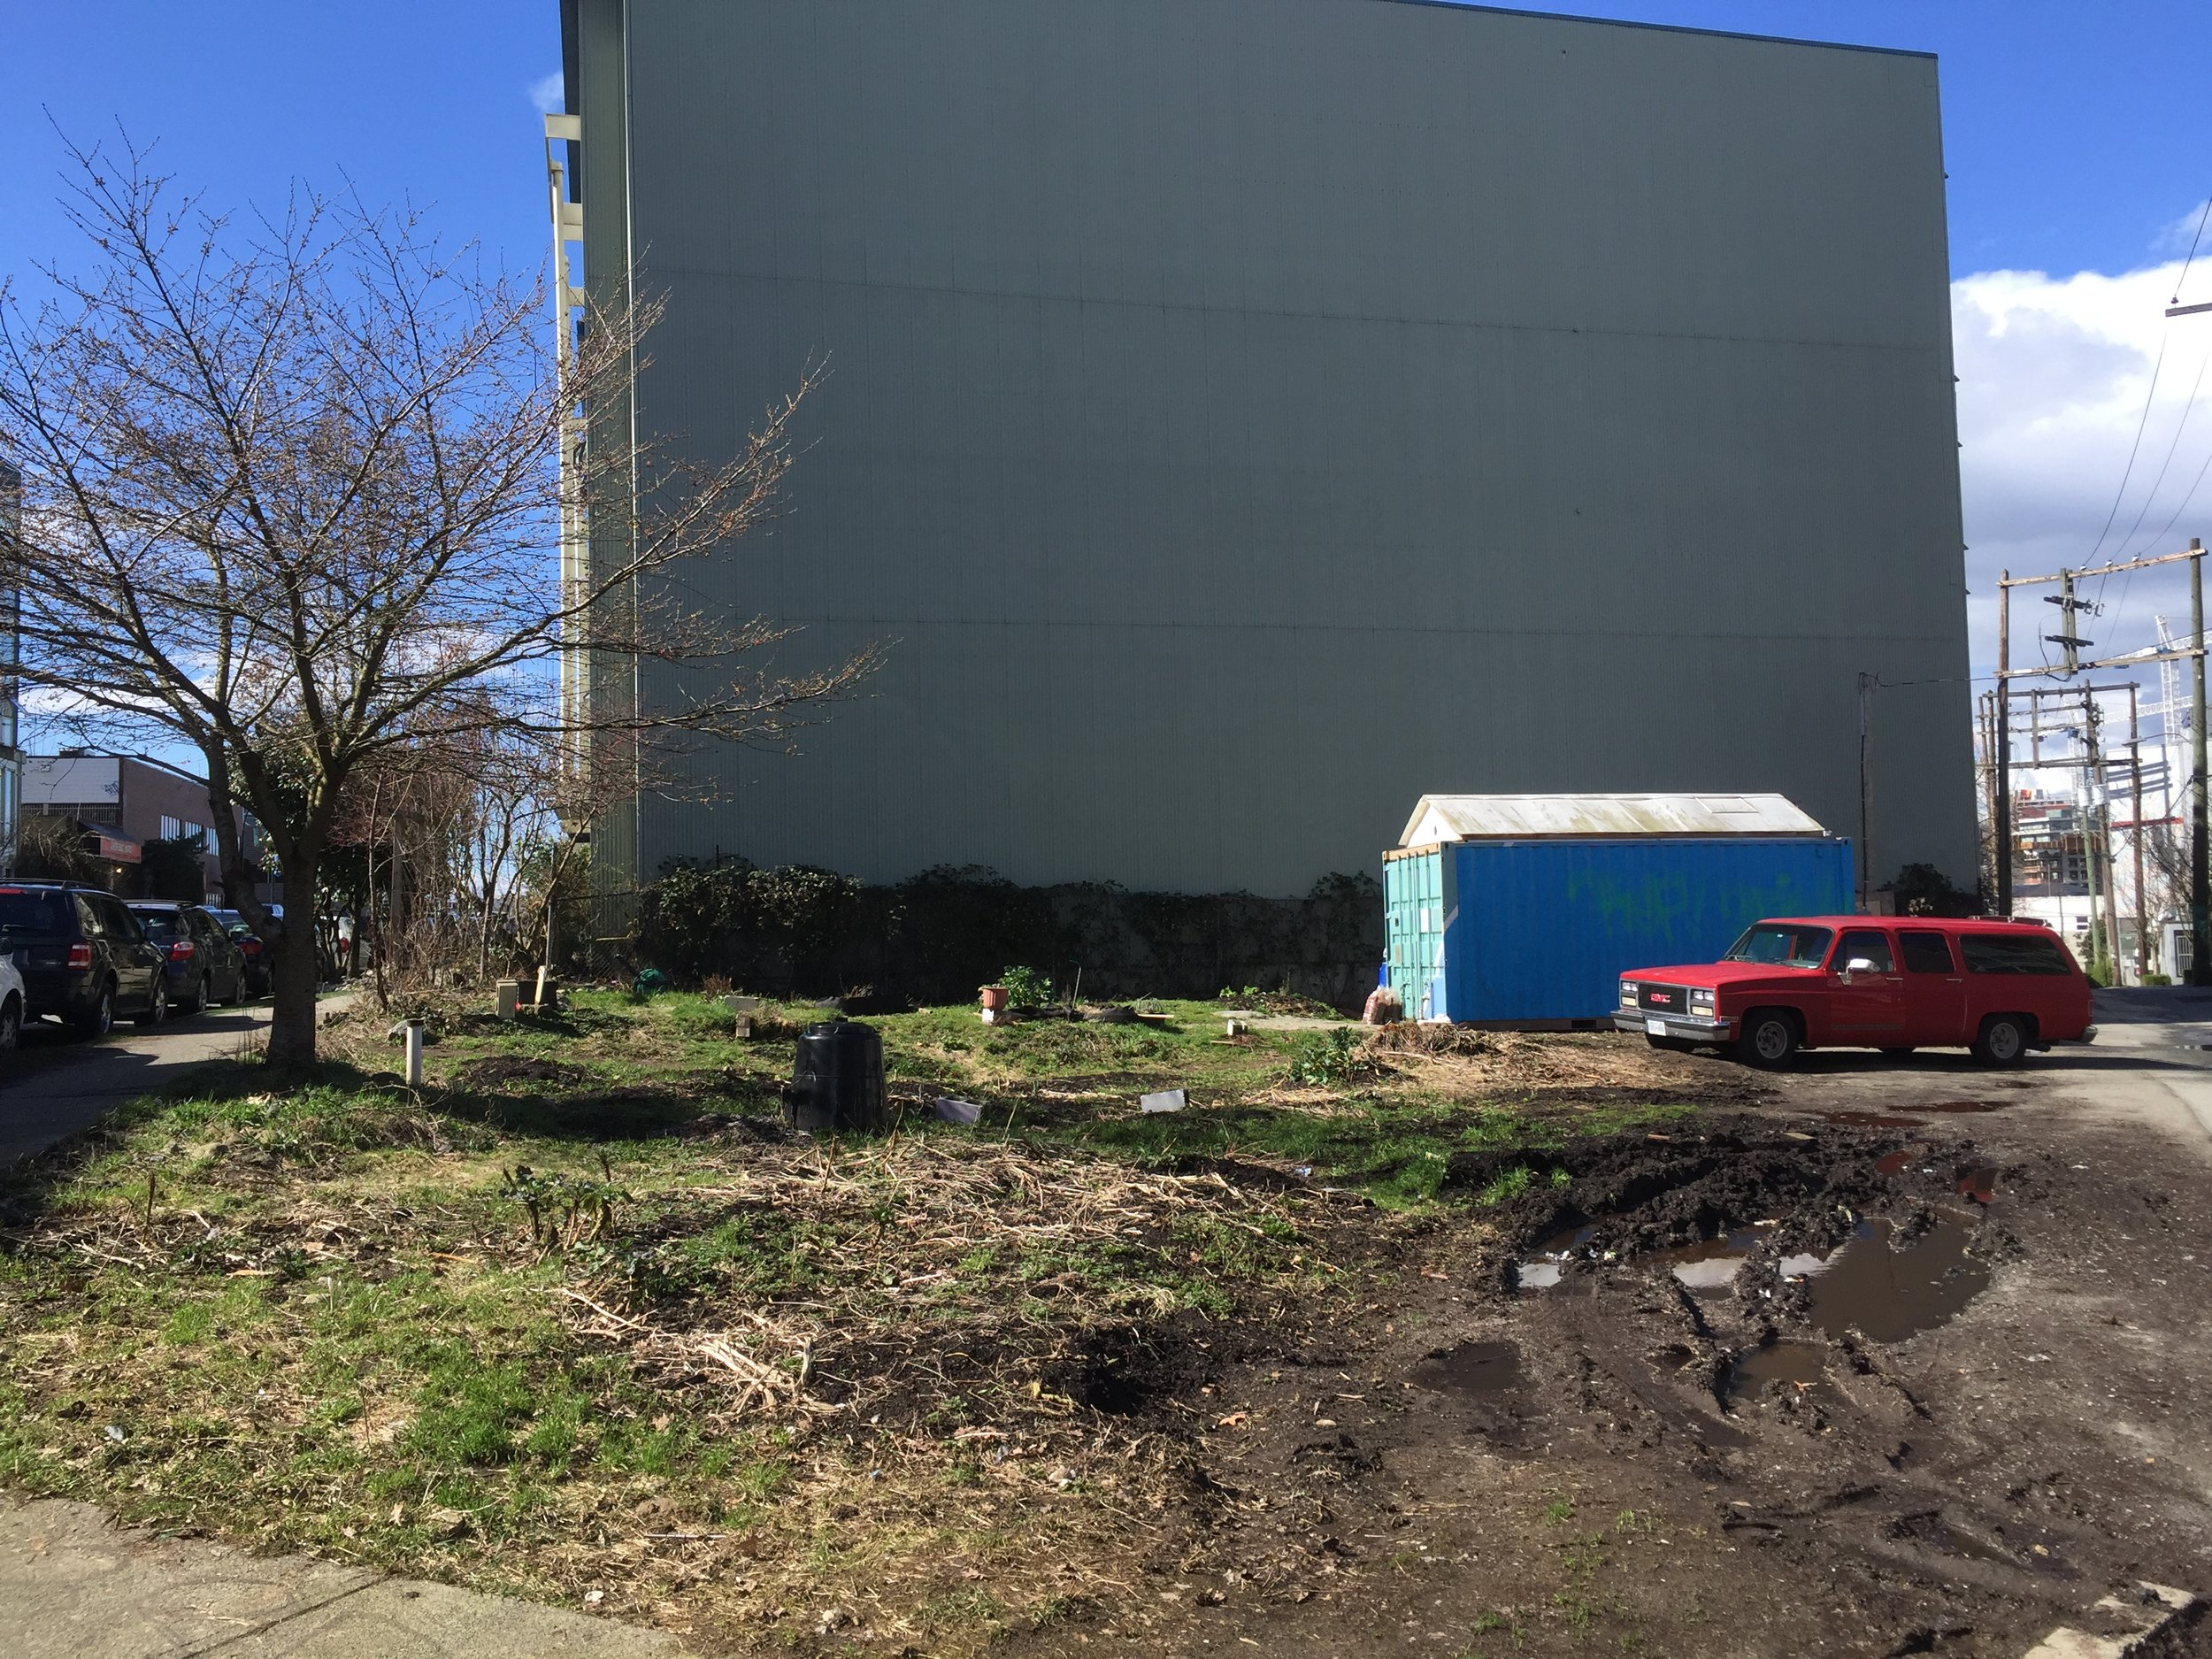 The vacant lot that would soon be home to coFood Vancouver's collaborative garden.